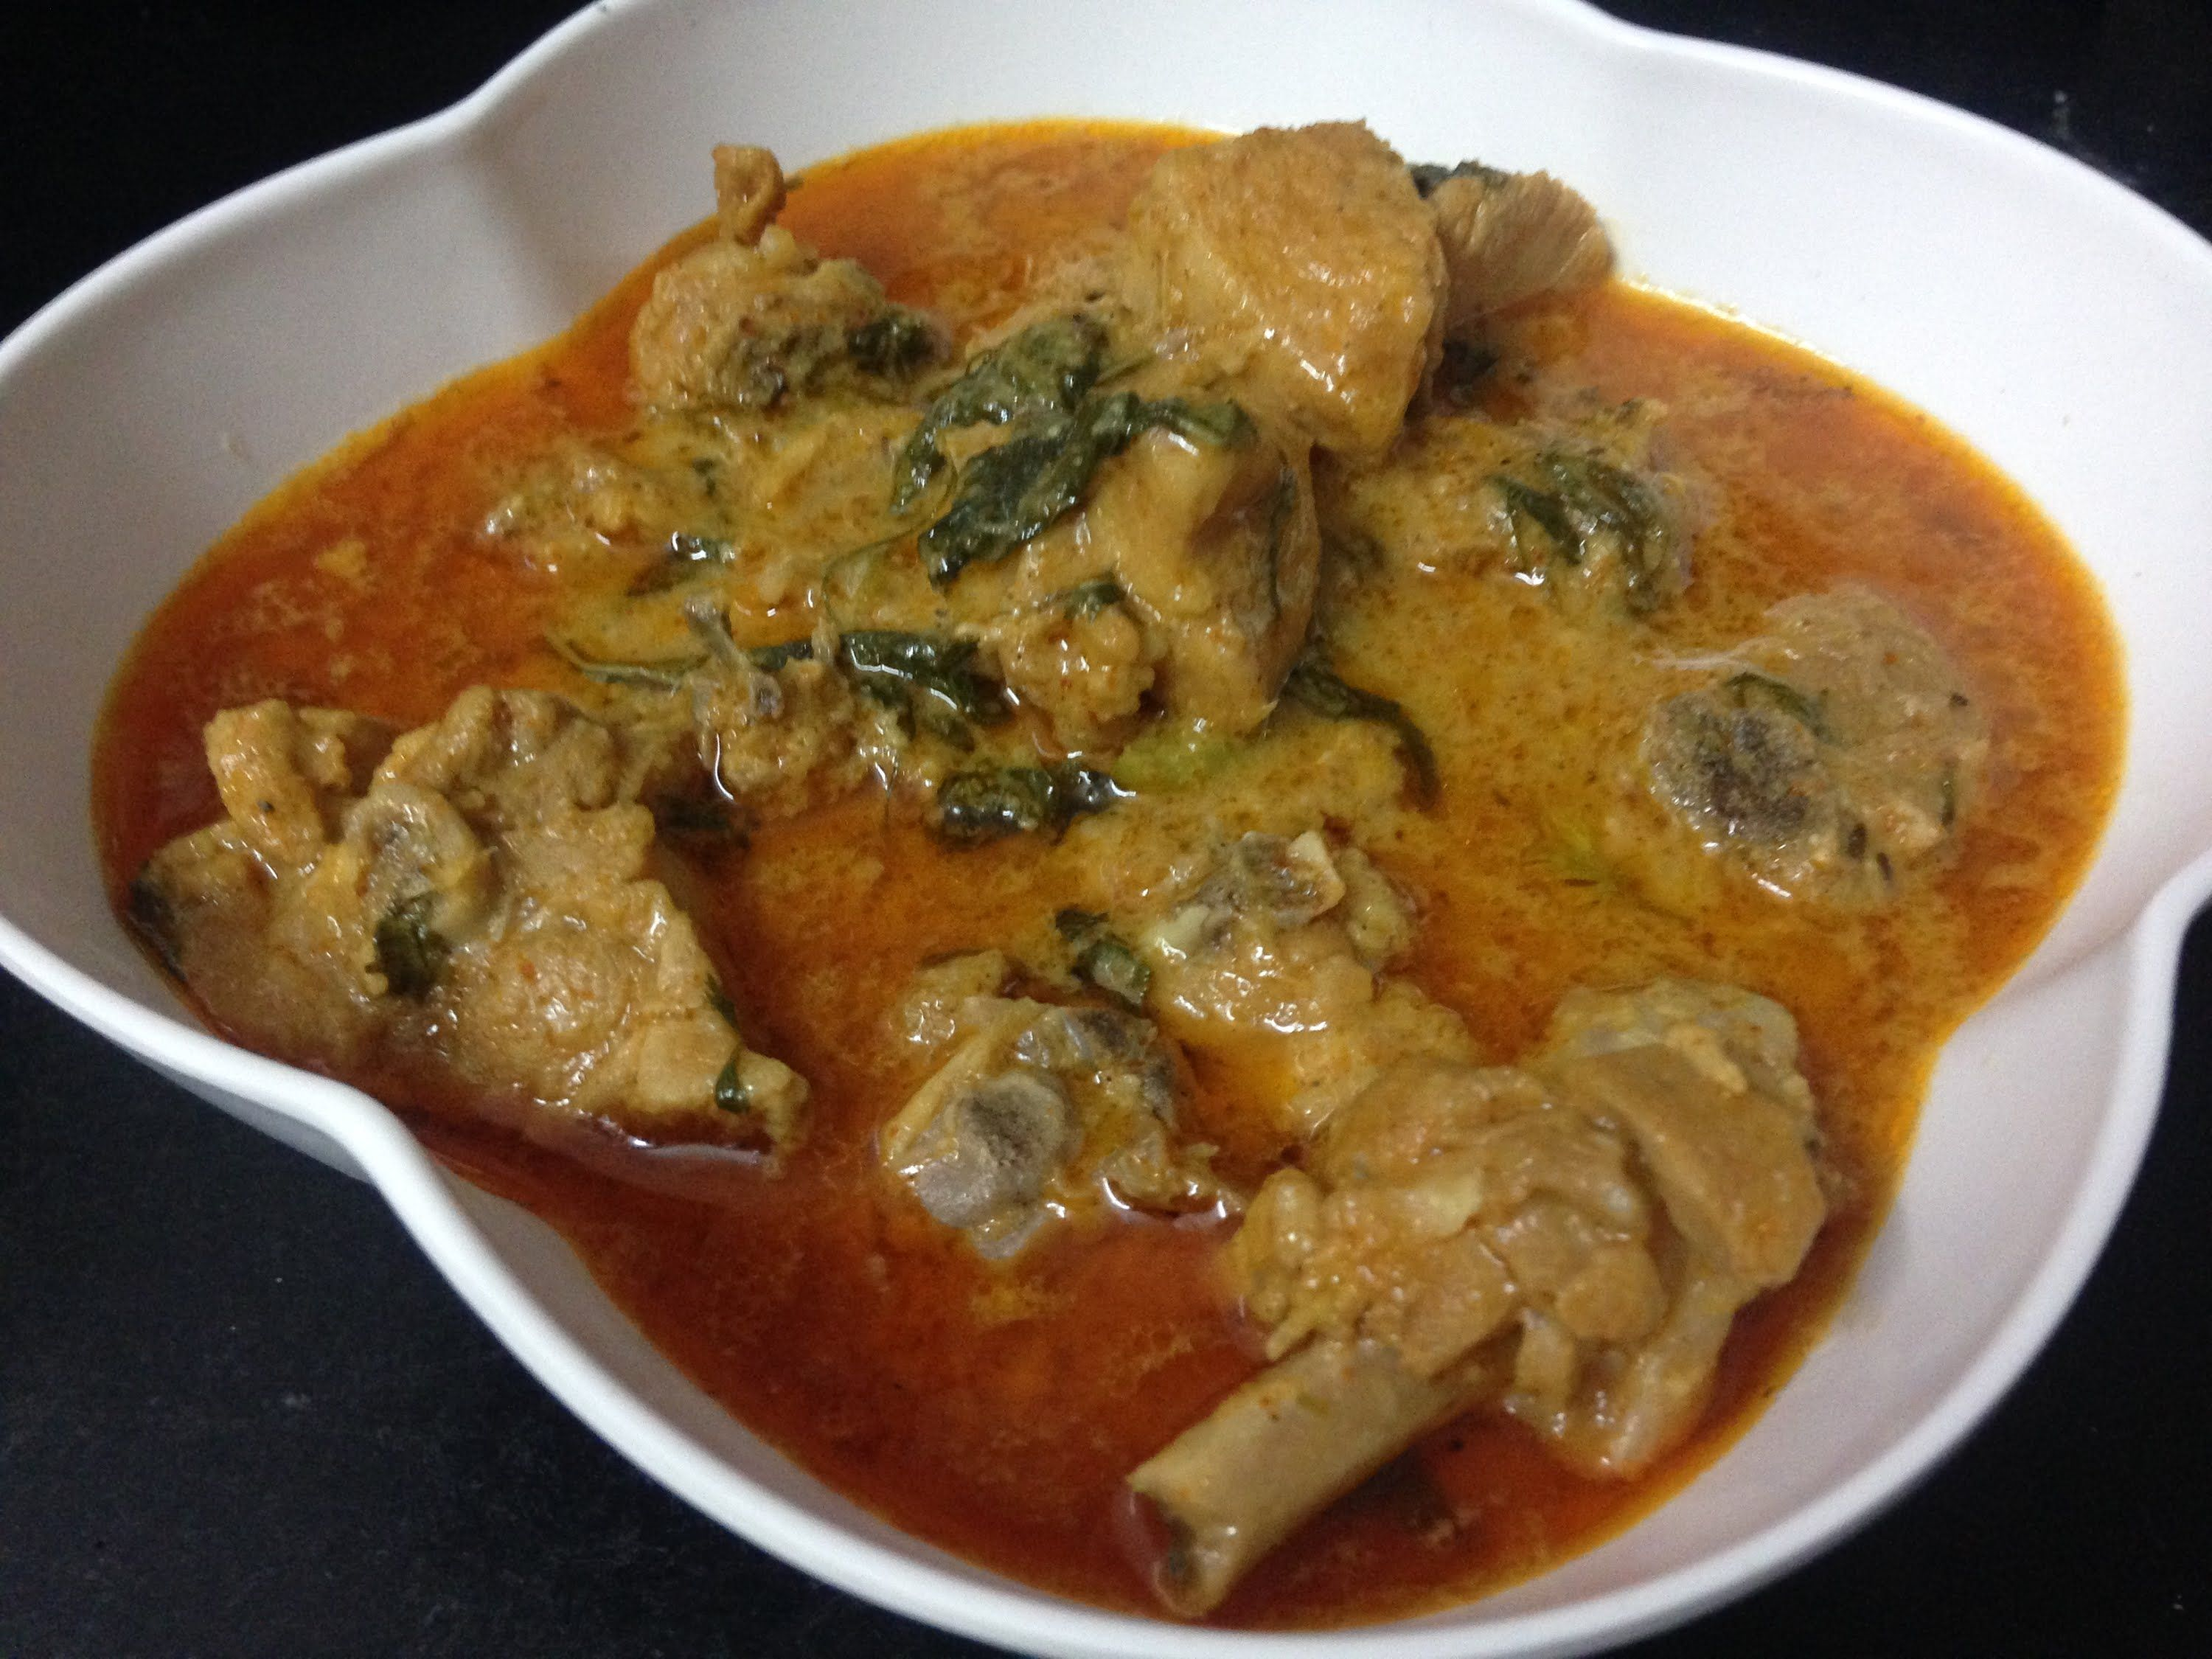 How to make chicken curry indian cooking restaurant style how to make chicken curry chicken curry in this video is an amazing indian mughlai chicken curry made with nuts and yogurt indian food recipes forumfinder Choice Image